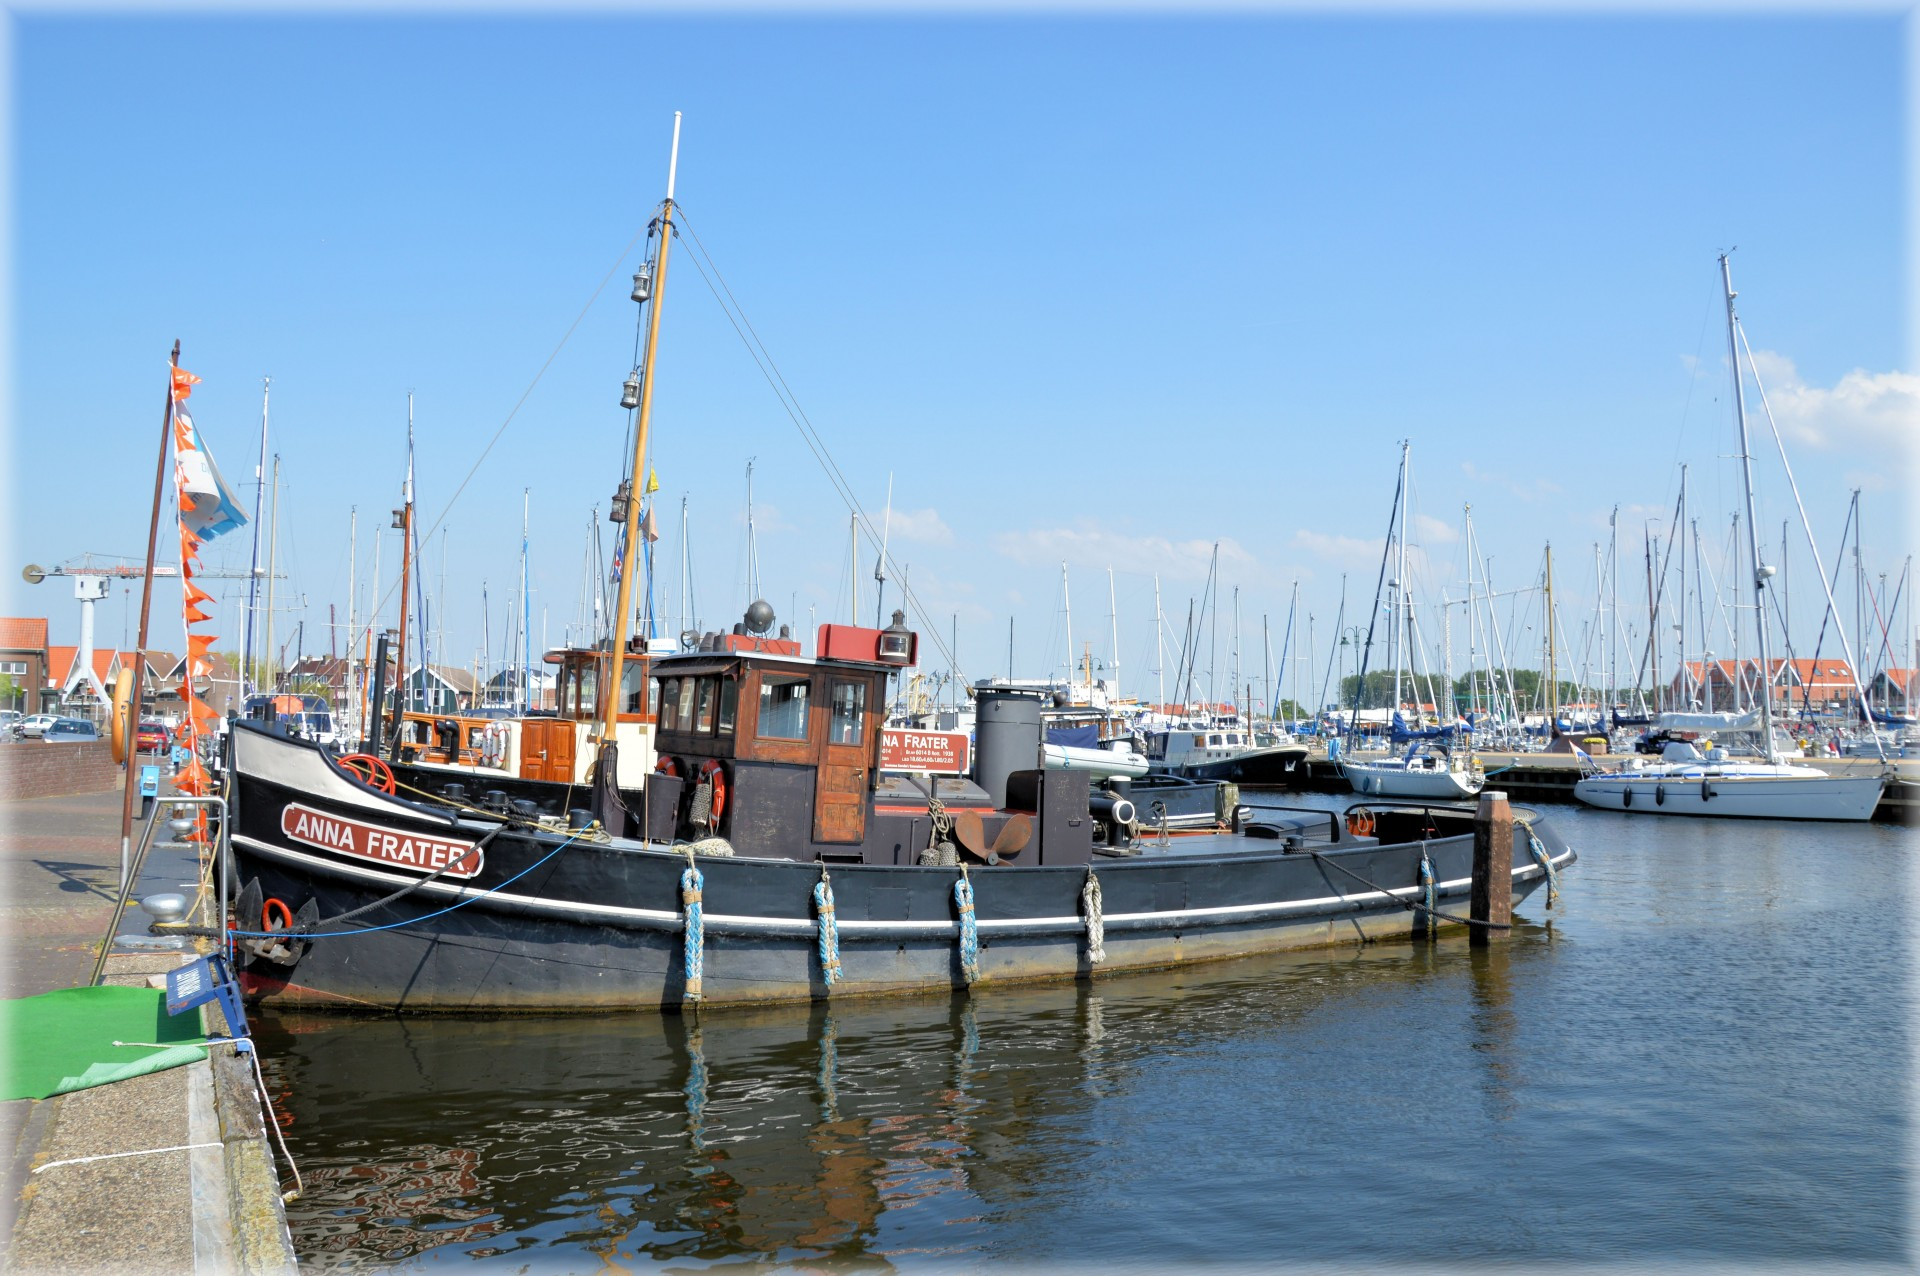 Fishing Boats Urk 4 Free Stock Photo - Public Domain Pictures